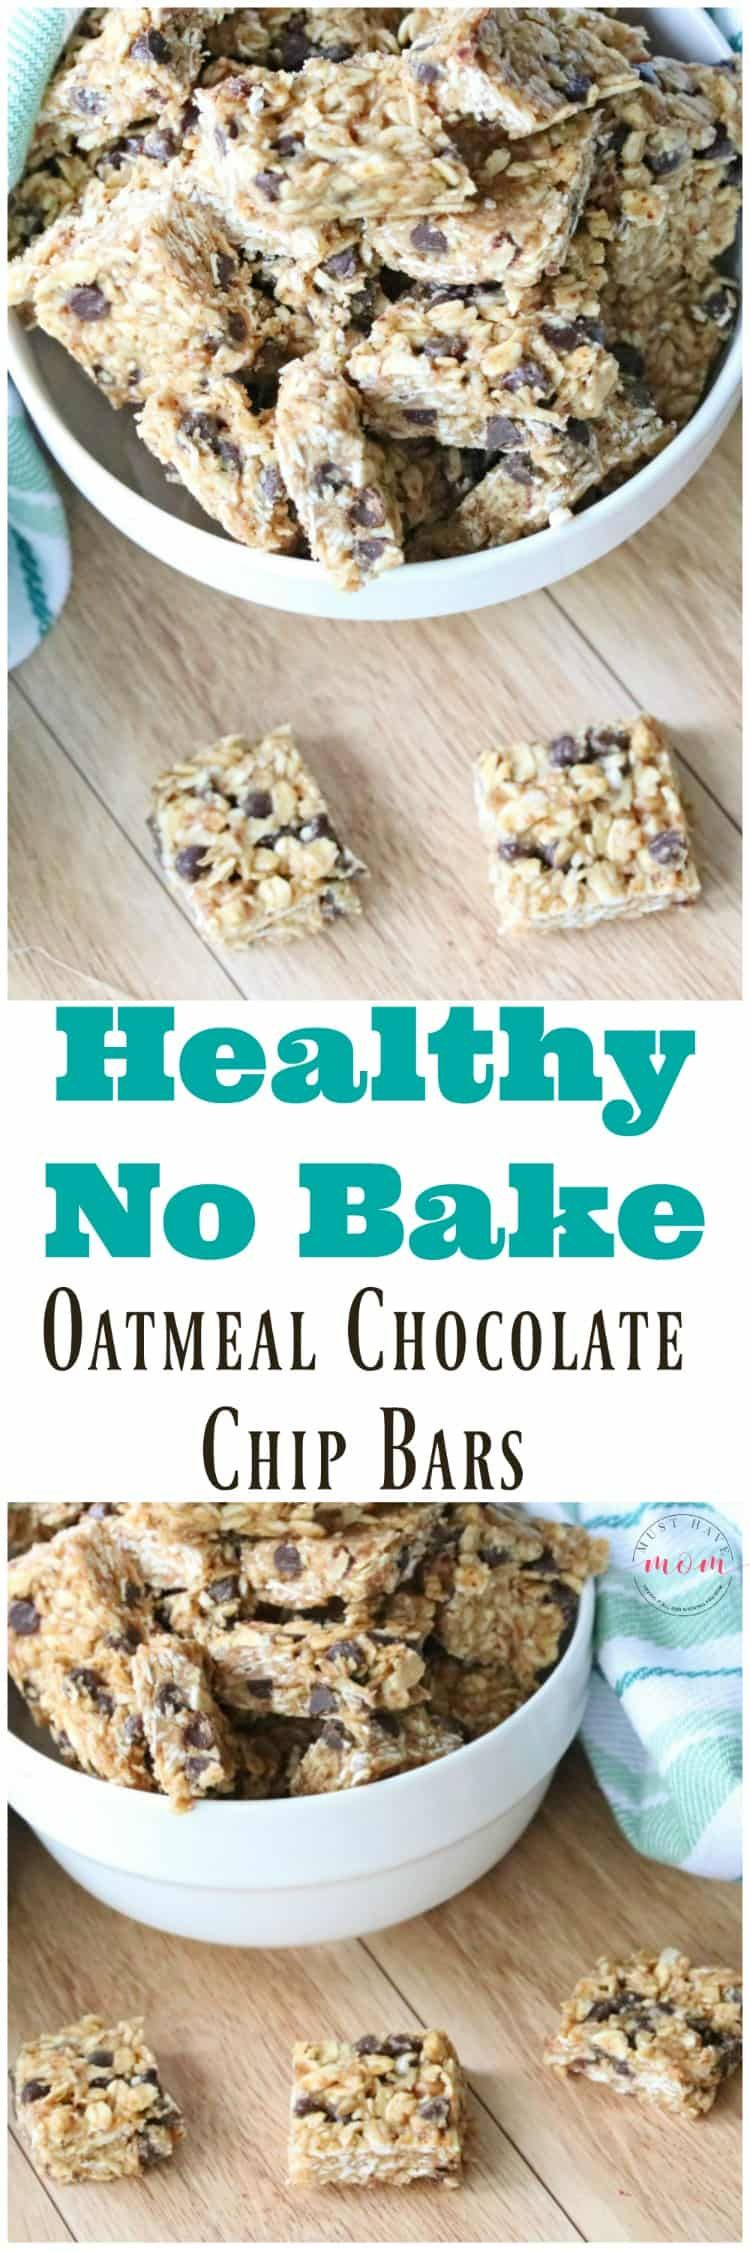 Photo of Healthy Oatmeal Chocolate Chip No Bake Bars